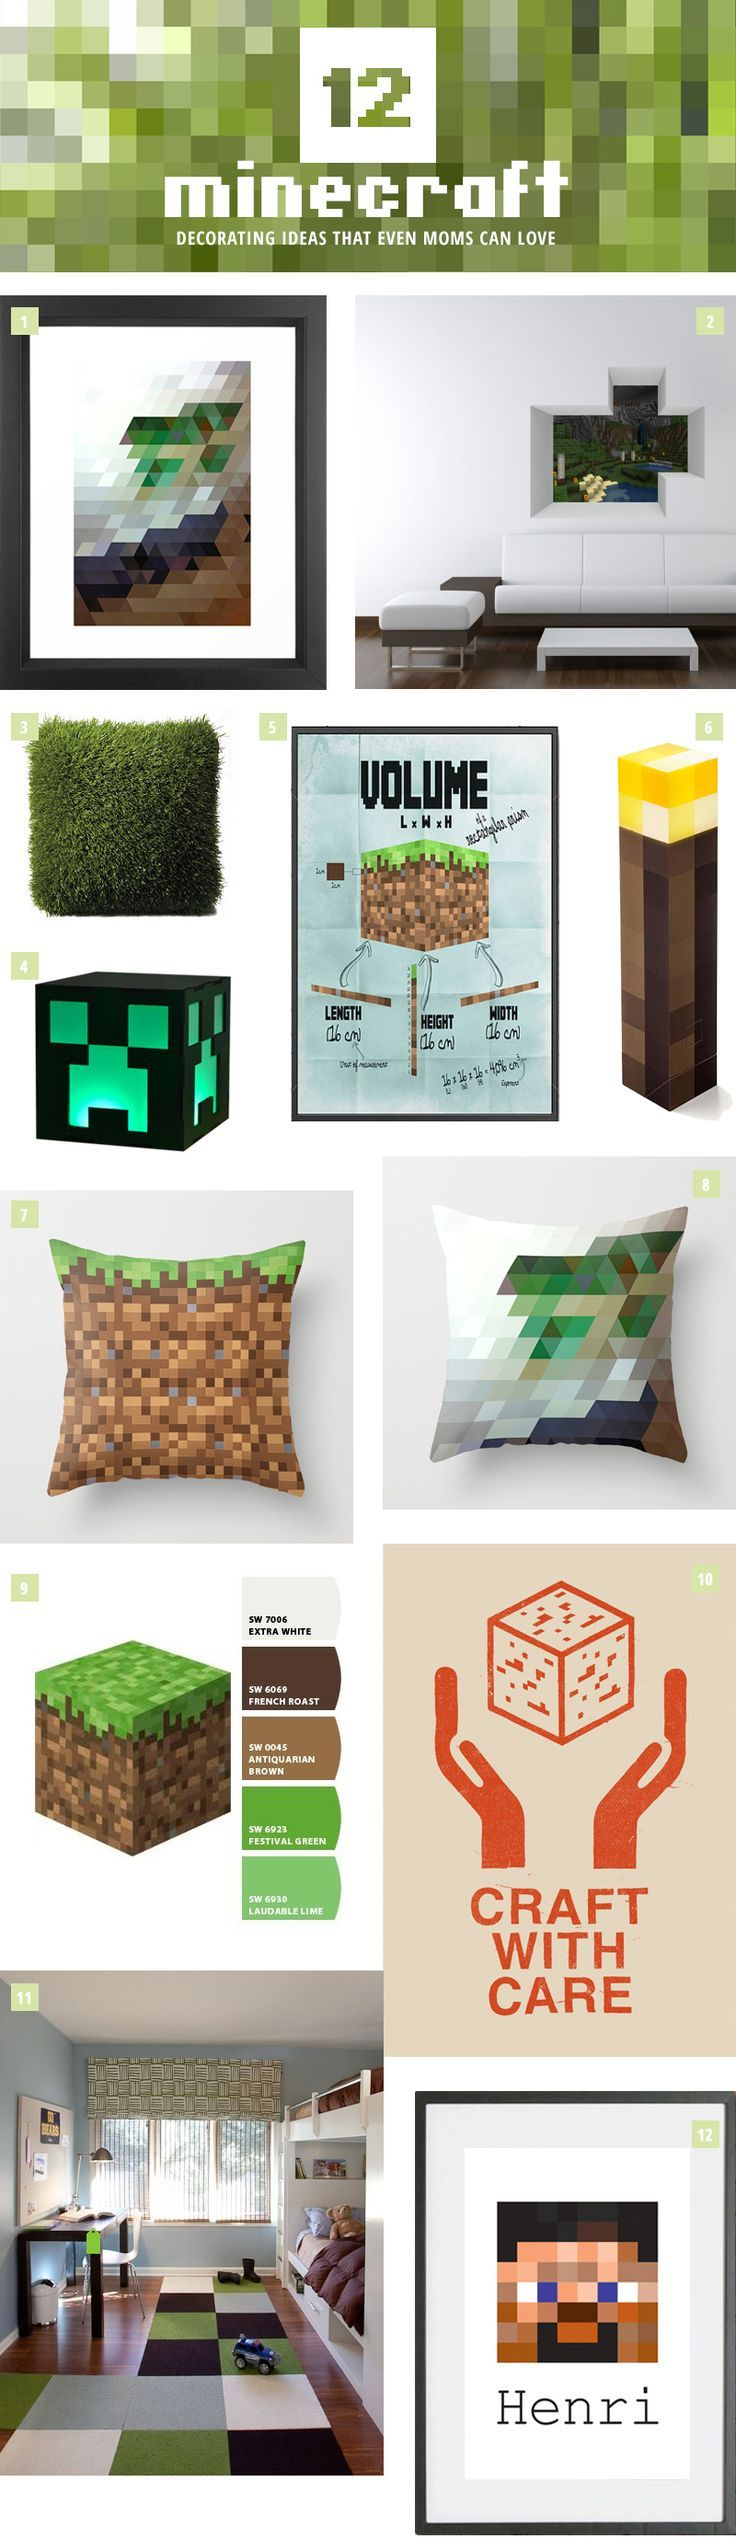 12 Minecraft Decorating Ideas that Even Moms Can Love. Get design, product and resource ideas for creating a Minecraft-themed look in your little gamer's room.